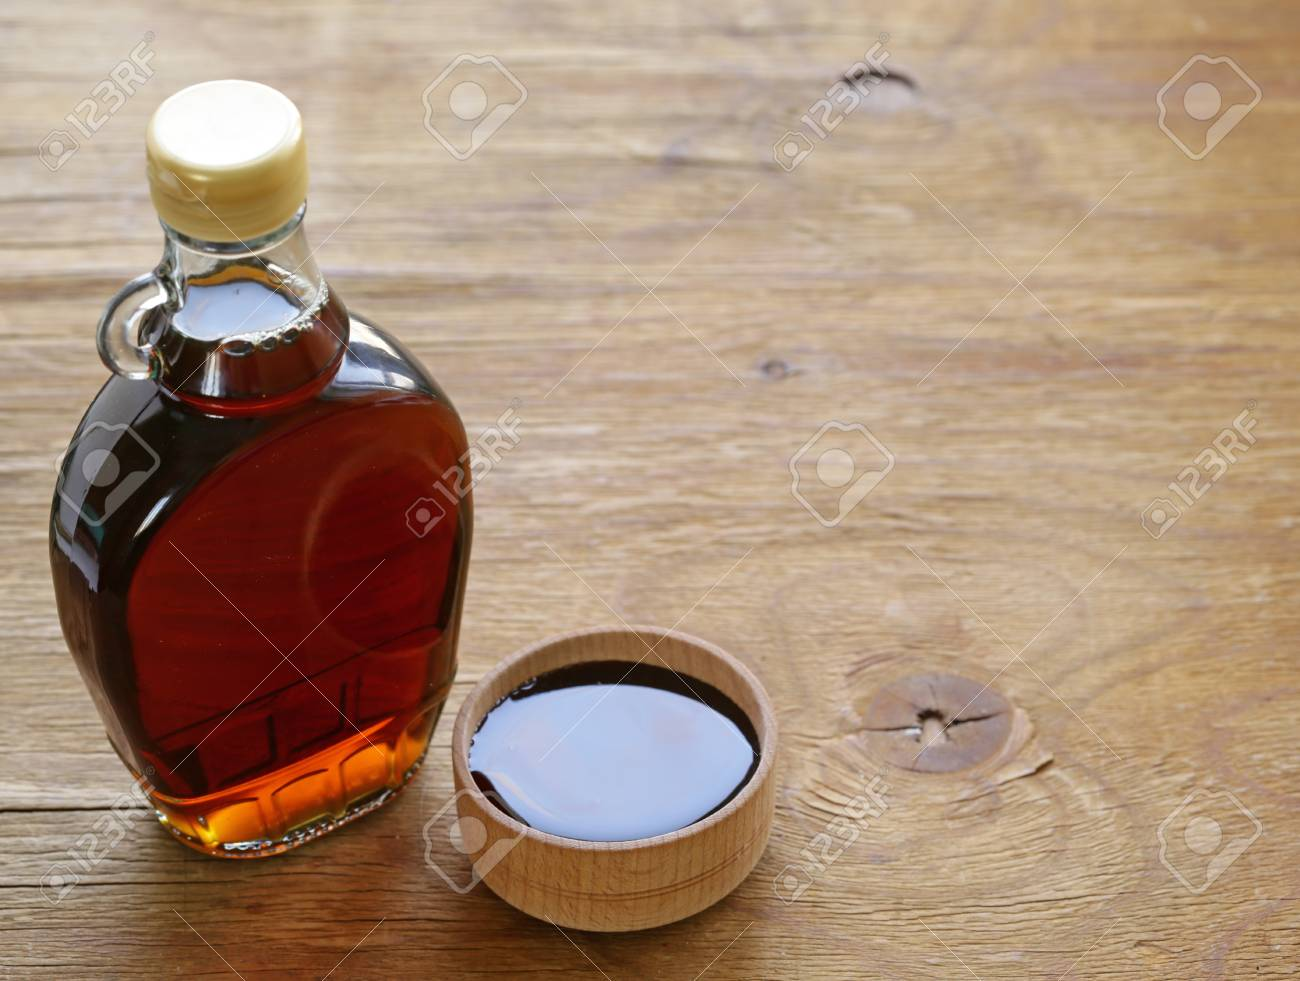 059e11a2a29 Maple syrup in a glass bottle - sweet dessert sauce Stock Photo - 95684414